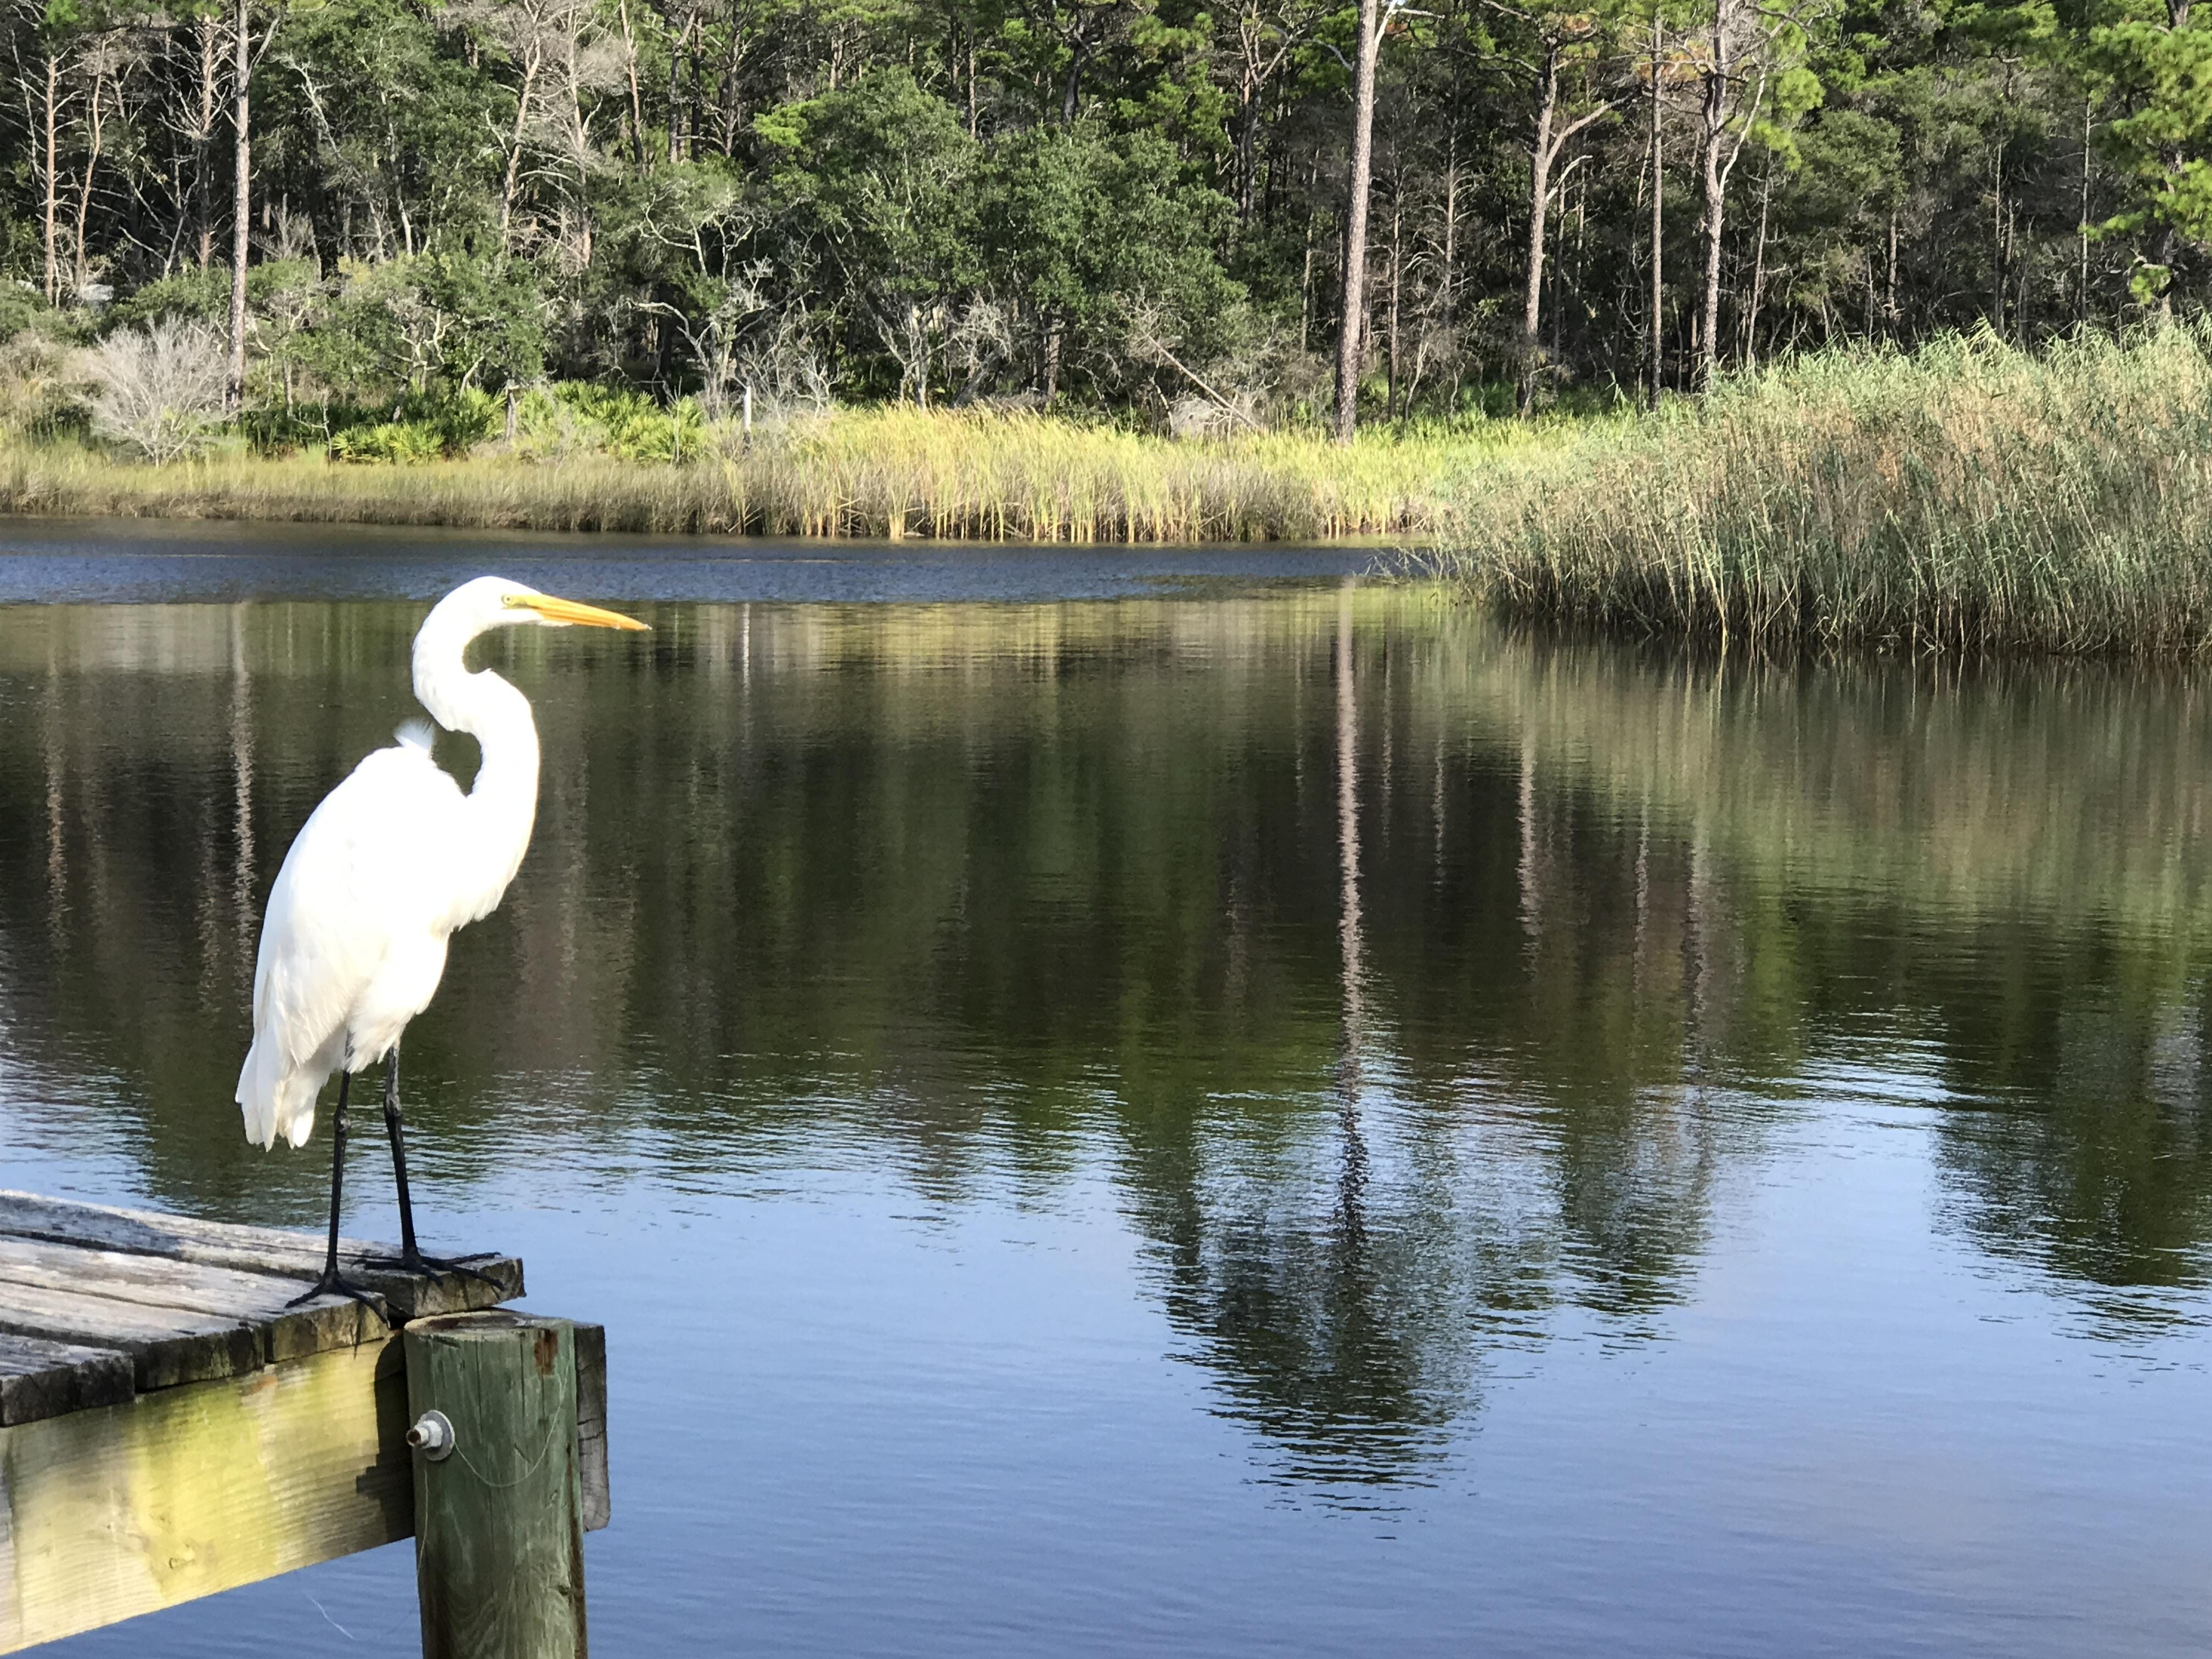 Sittin' on the Dock of the Bay: Taken at a gulf coast tidal pool